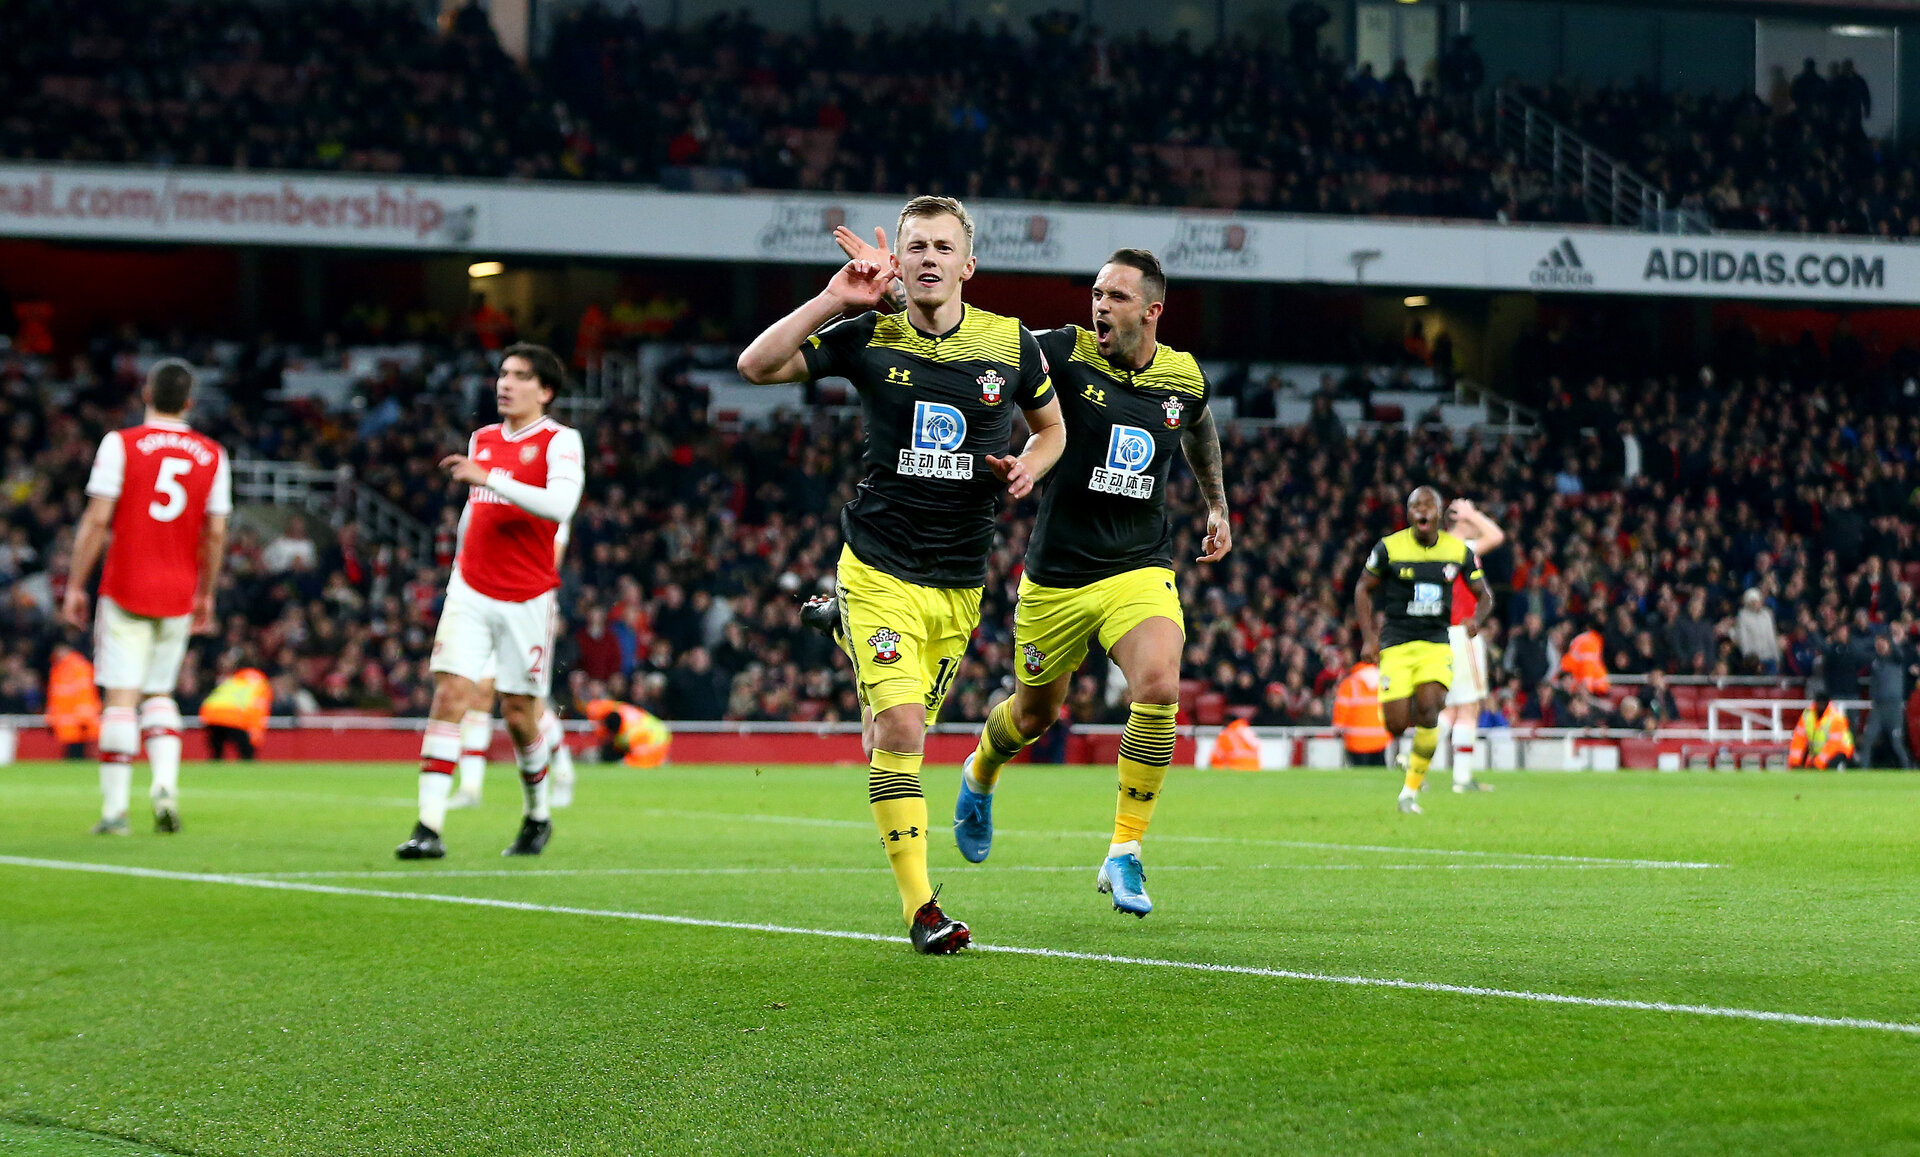 LONDON, ENGLAND - NOVEMBER 23: James Ward-Prowse of Southampton celebrates after putting his team 2-1 up during the Premier League match between Arsenal FC and Southampton FC at Emirates Stadium on November 23, 2019 in London, United Kingdom. (Photo by Matt Watson/Southampton FC via Getty Images)